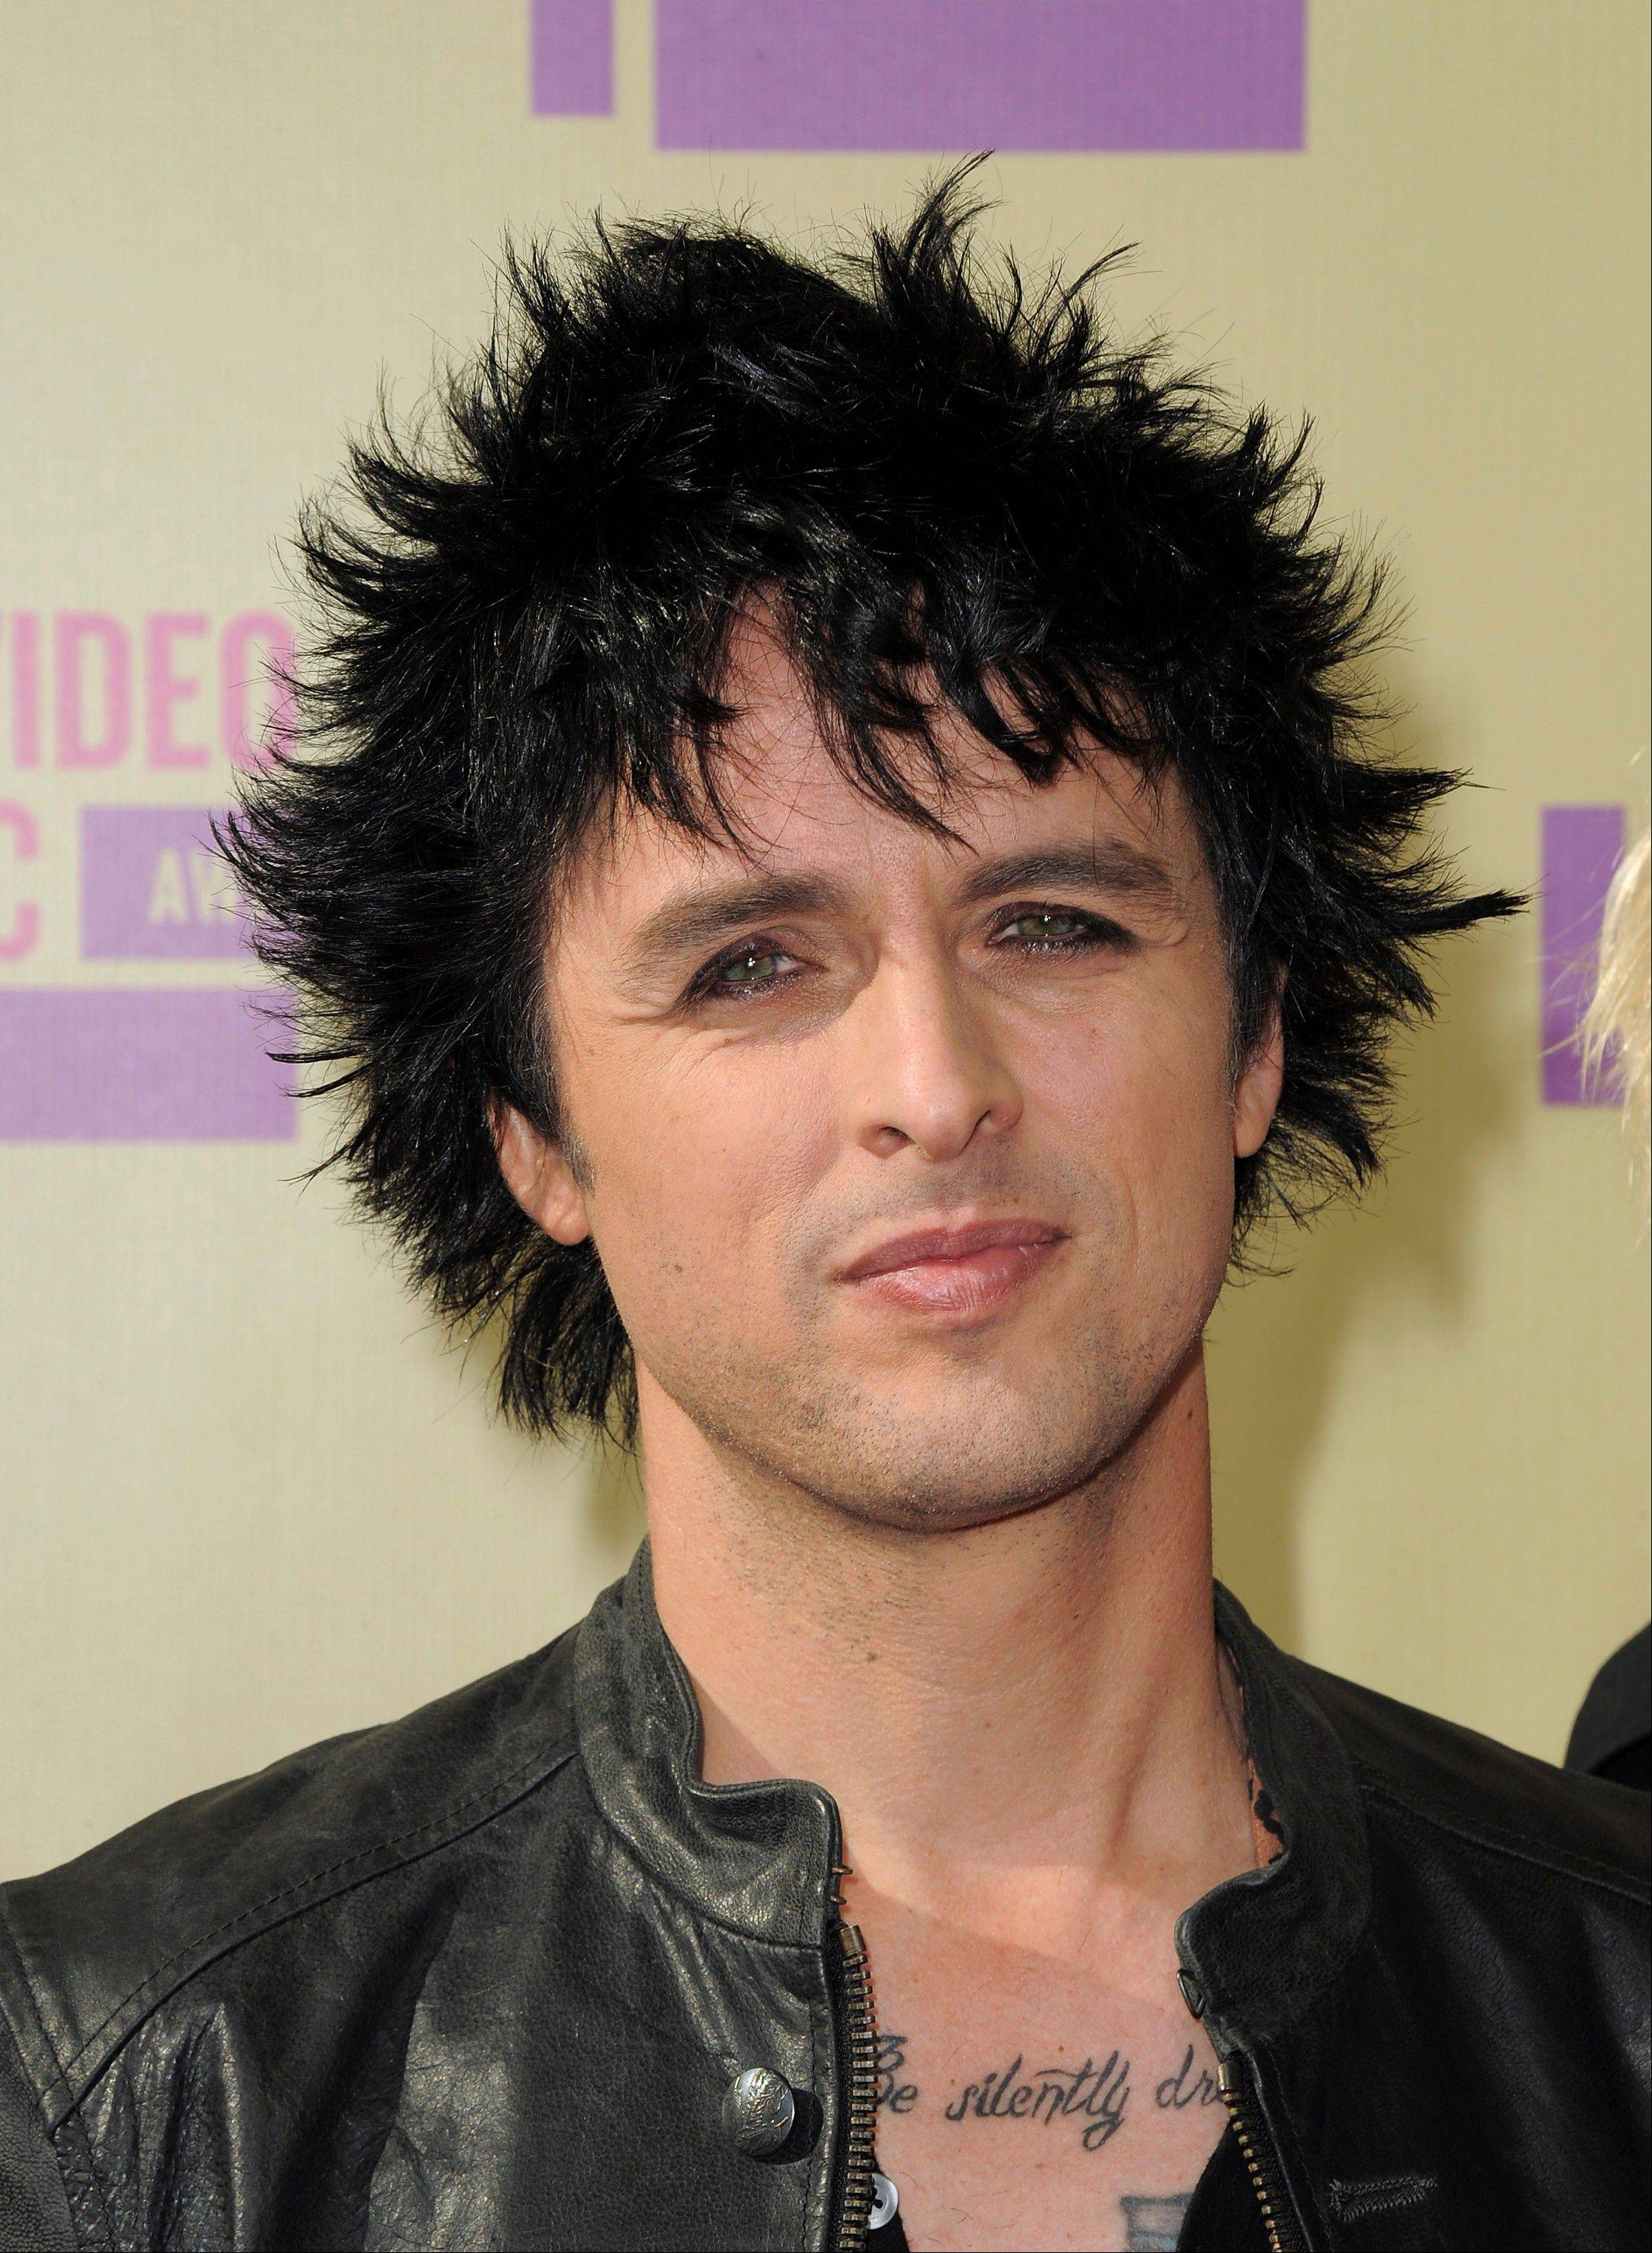 Billie Joe Armstrong of Green Day attends the MTV Video Music Awards on Thursday, Sept. 6, 2012, in Los Angeles.